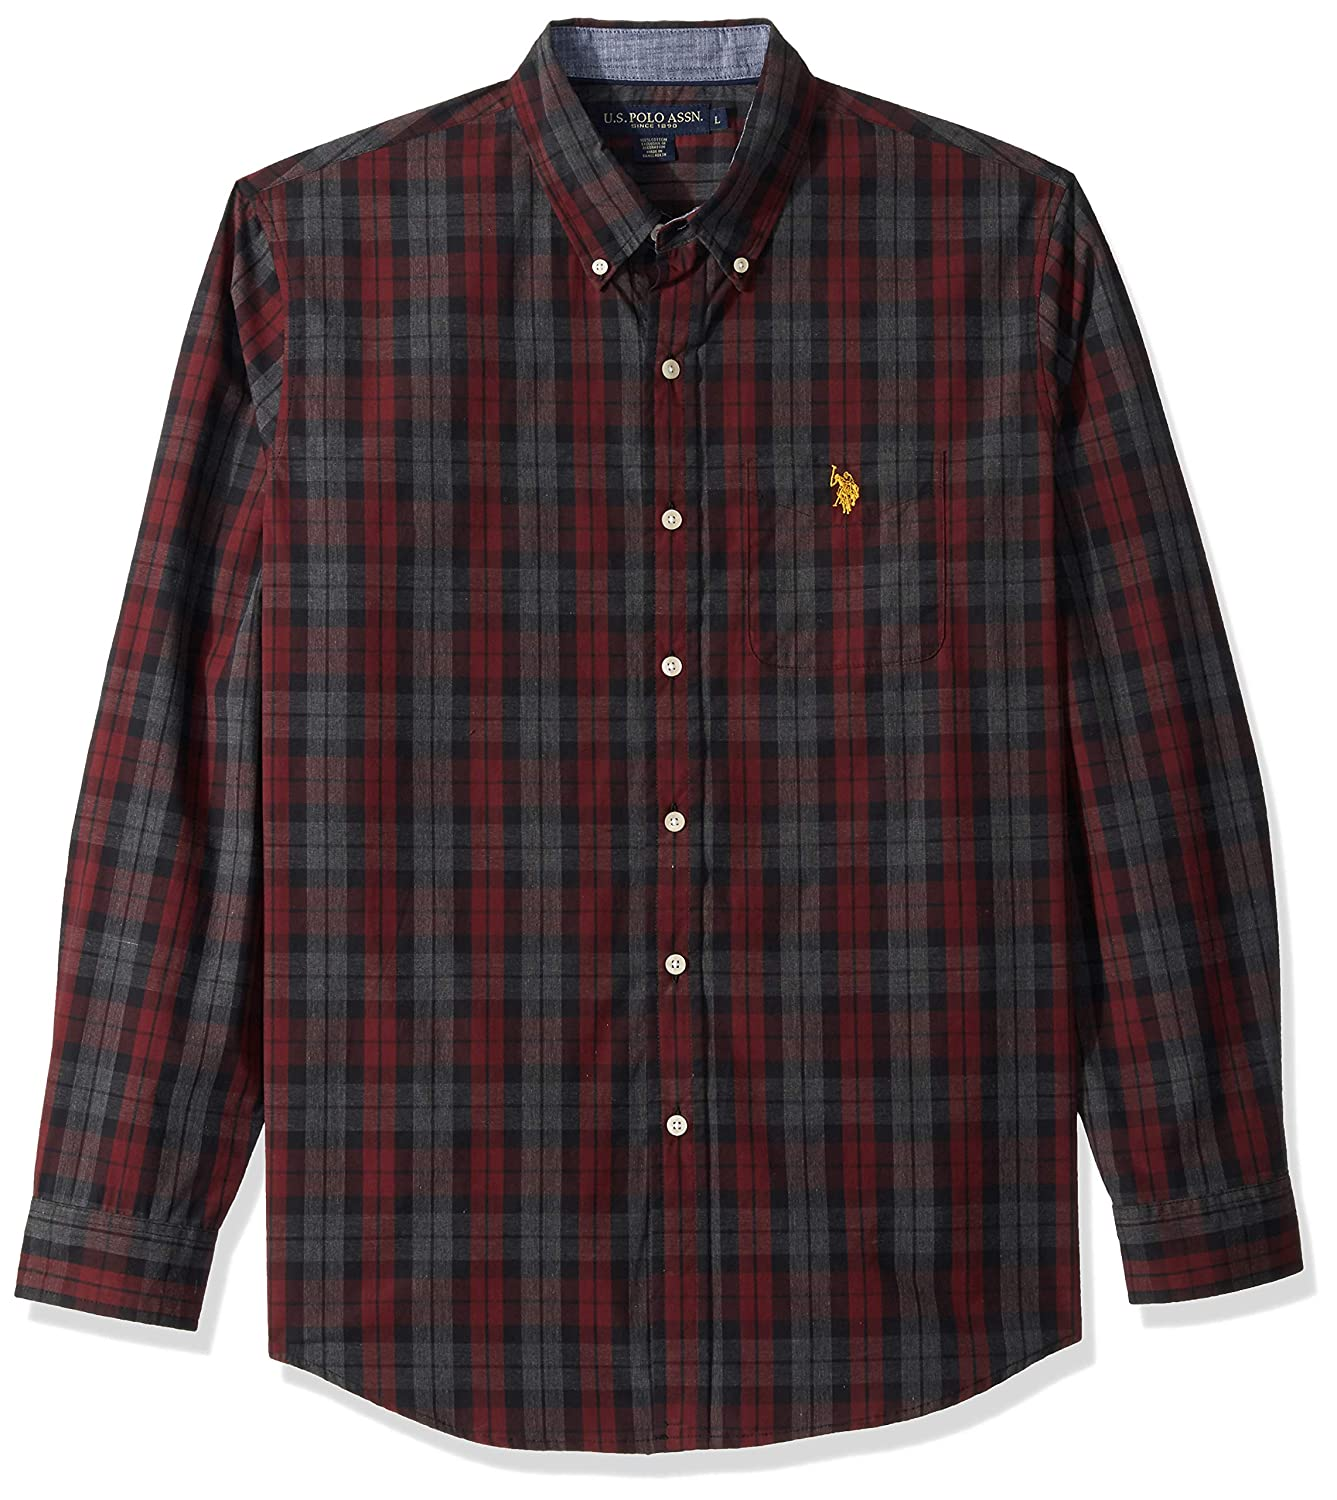 Mens Classic Fit Long Sleeve Plaid Sport Shirt Polo Assn U.S